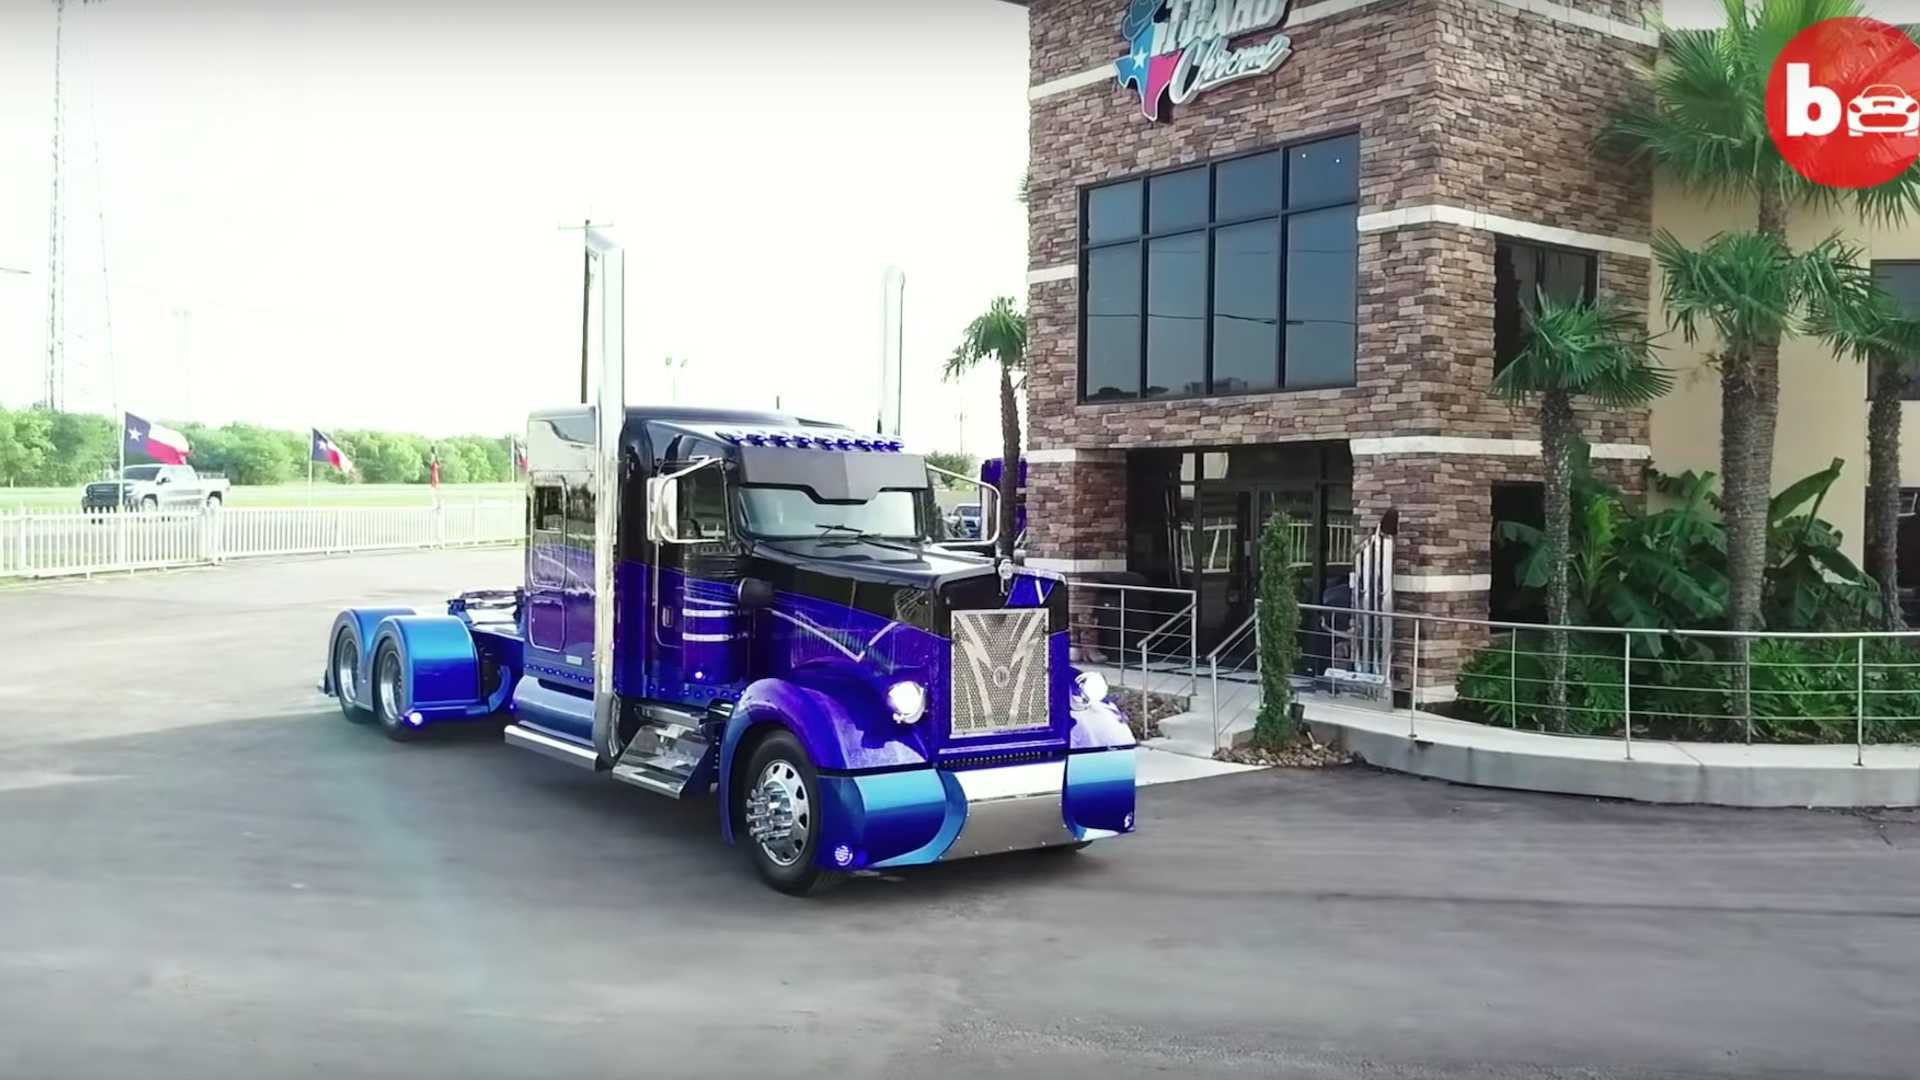 It Took $180,000 To Modify This Wild 750-Horsepower Truck